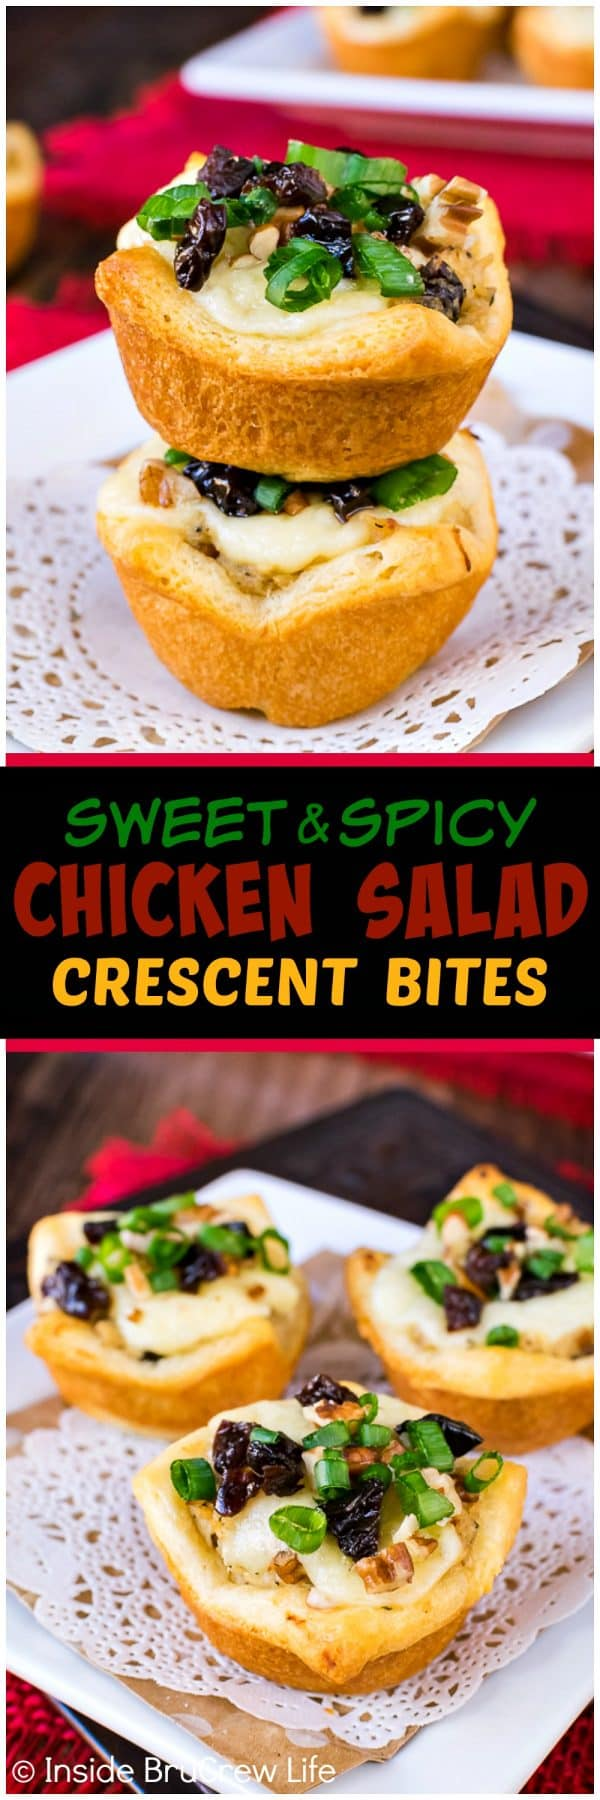 Sweet and Spicy Chicken Salad Crescent Bites - little Pillsbury Crescent Roll cups filled with melted cheese and chicken salad makes a delicious appetizer. Easy recipe to share at game day parties!